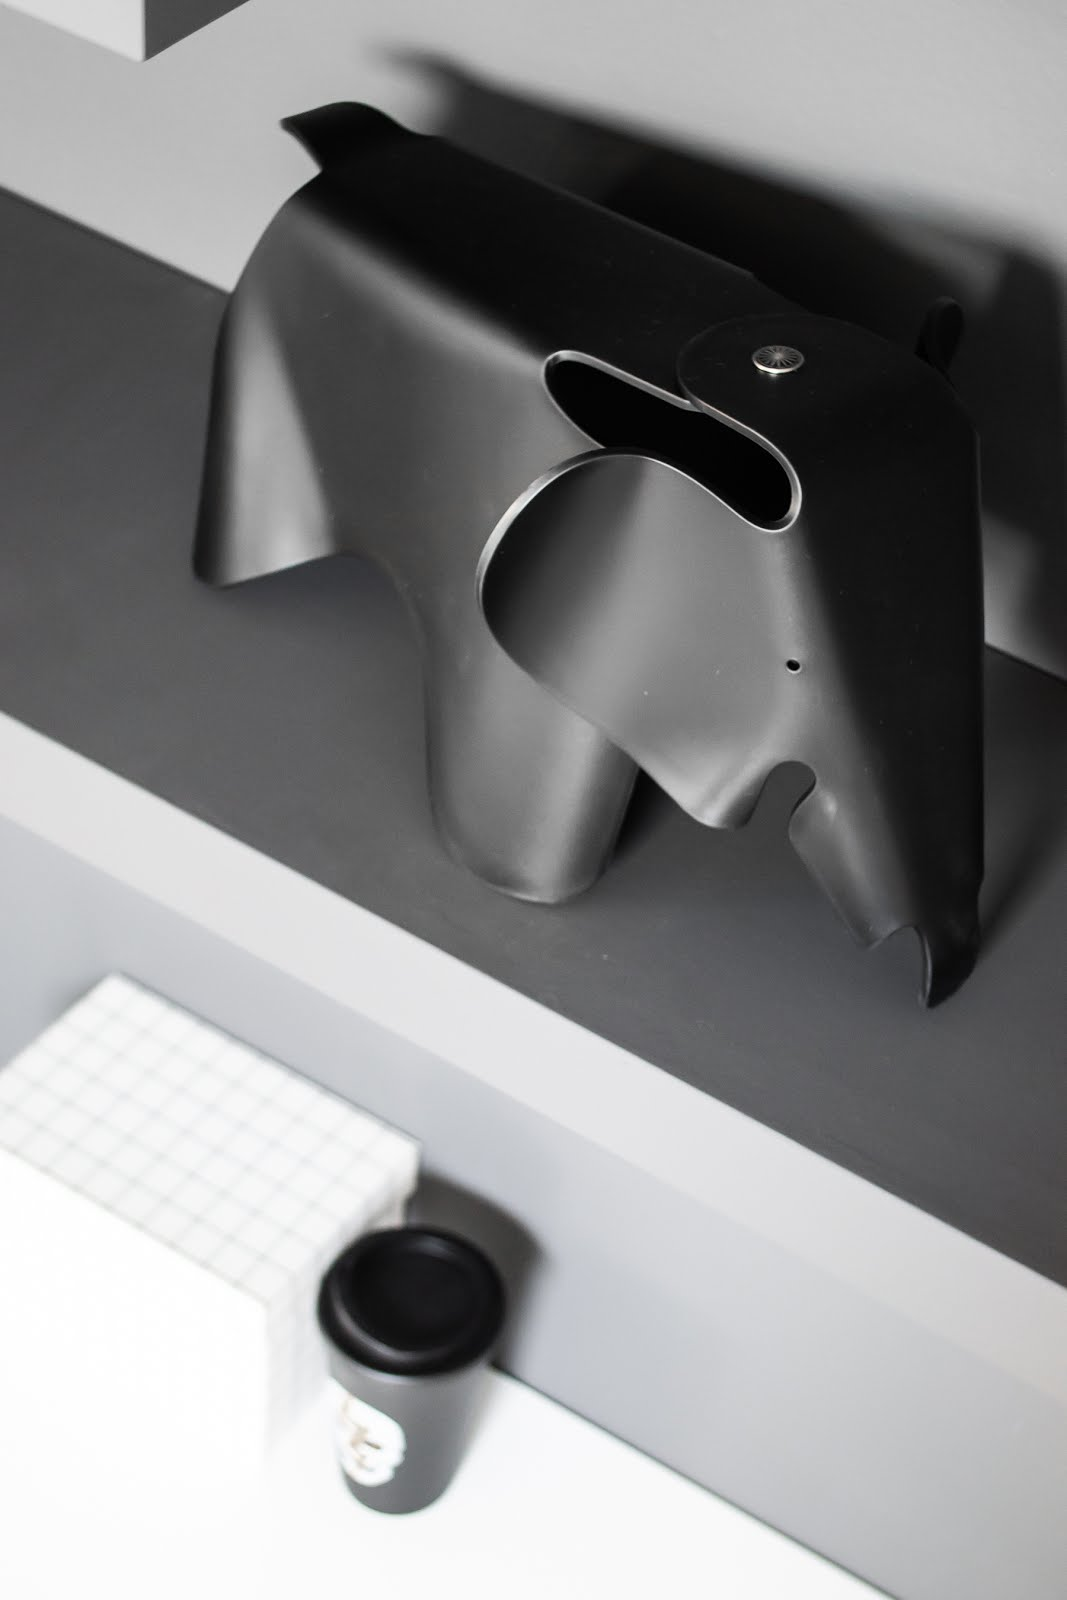 Vitra, charles & ray eames, elephant, small, black, interior, mister design